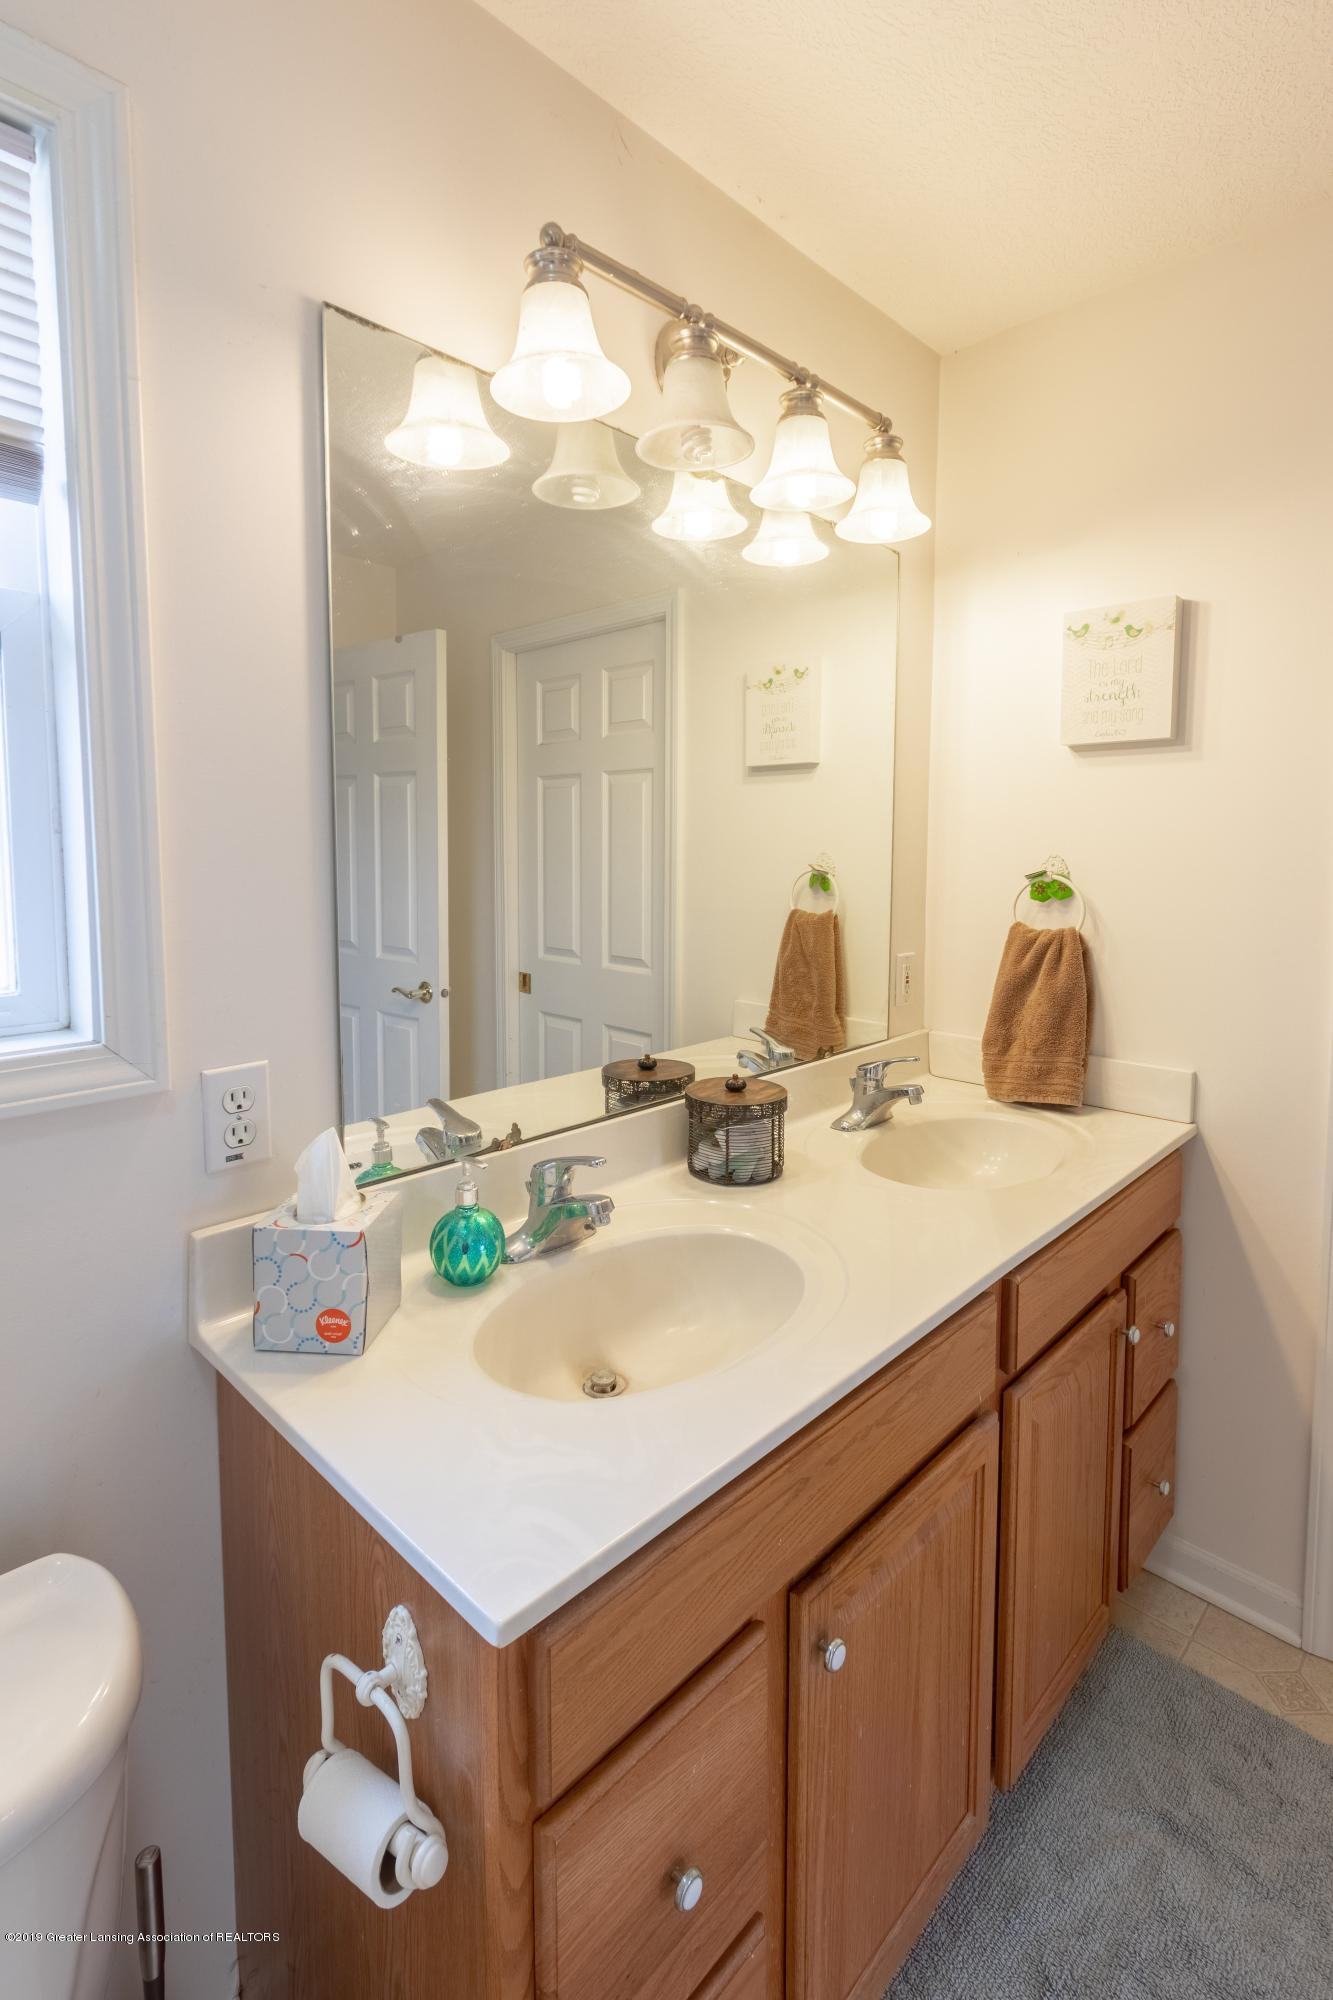 6121 W Centerline Rd - Master Bathroom - 21